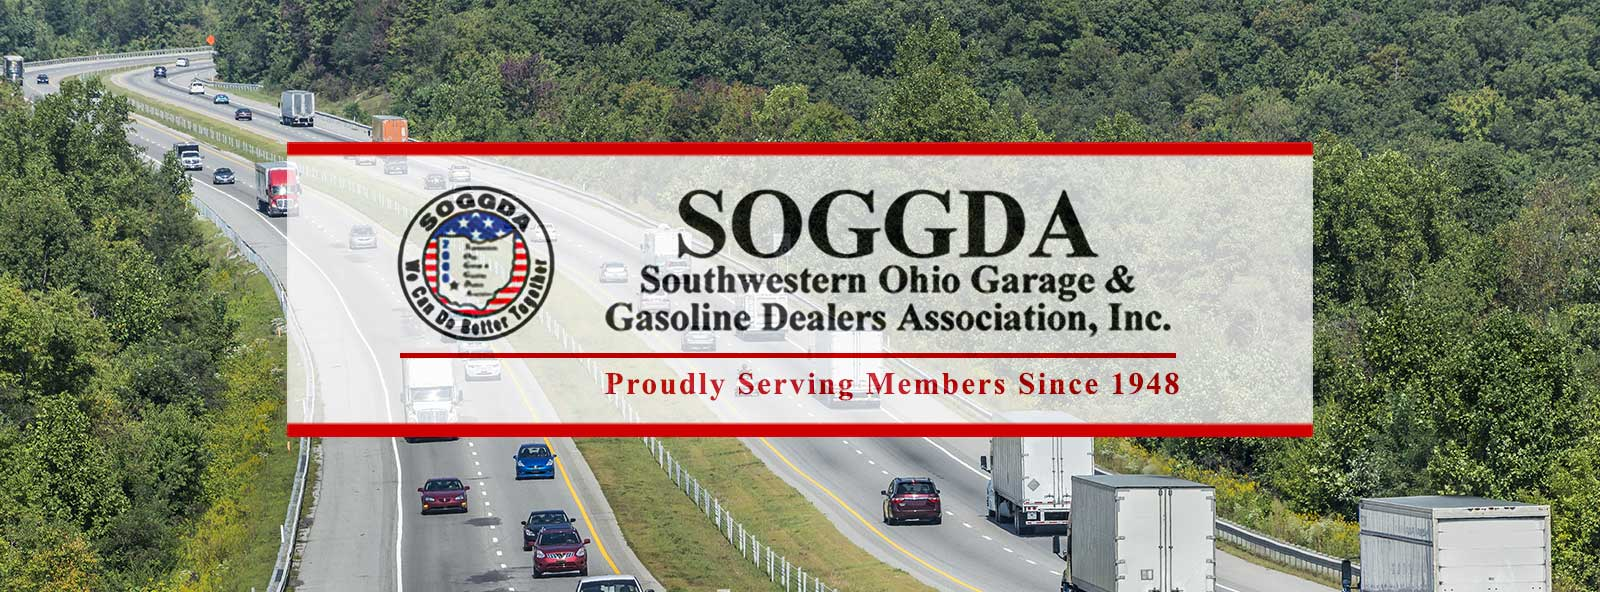 We are a SOGGDA Association Member